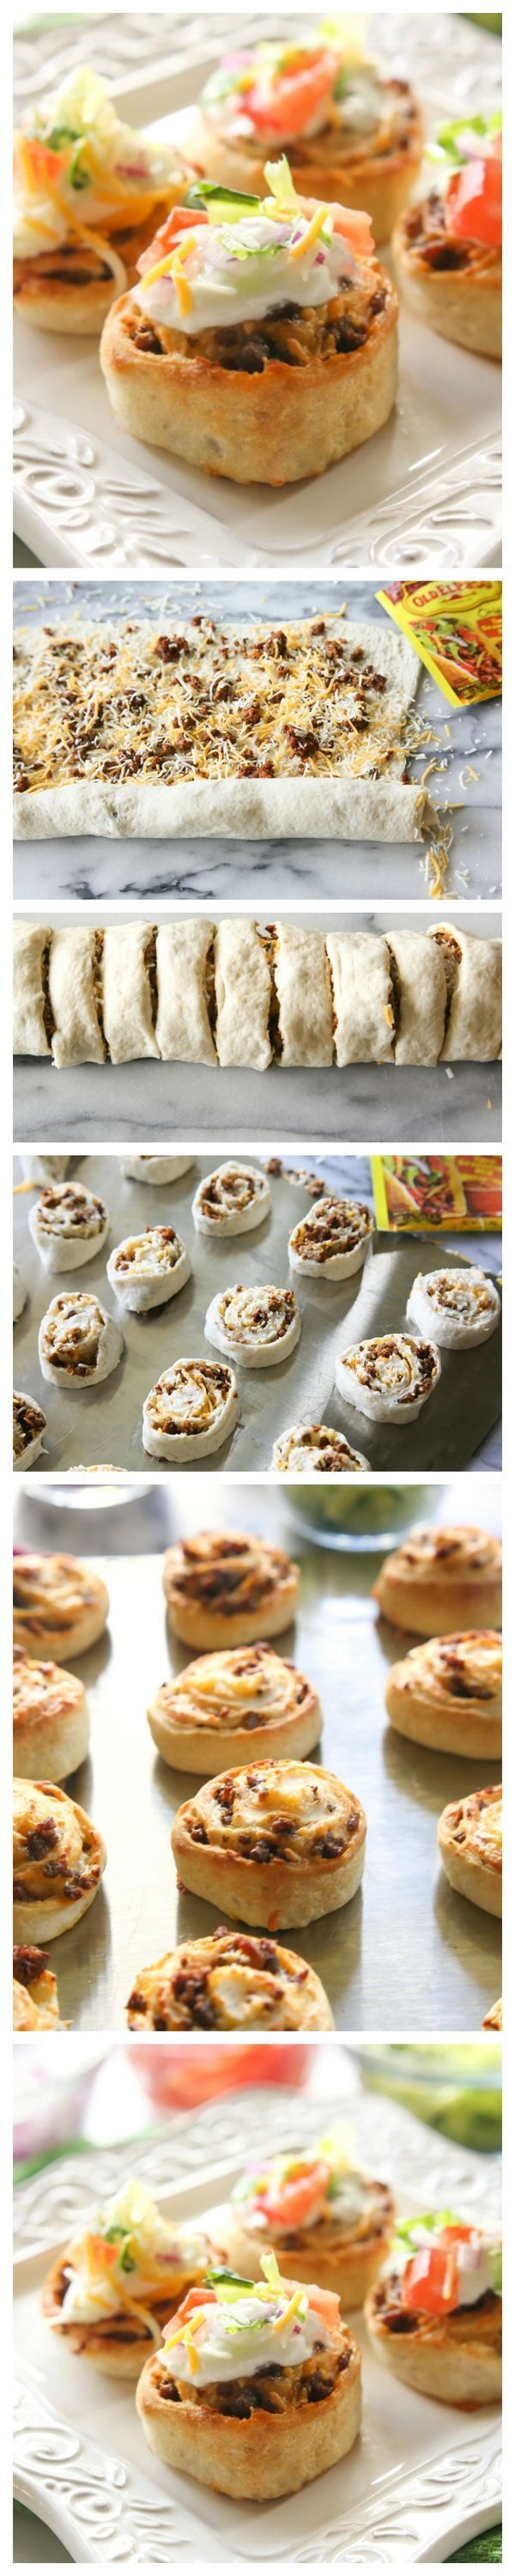 These Taco Pizza Rolls are made with taco meat and cheese rolled up in pizza dough. Another twist on Taco Tuesday! Set up a toppings bar and let your guests get in the action and add their own toppings.  the-girl-who-ate-everything.com